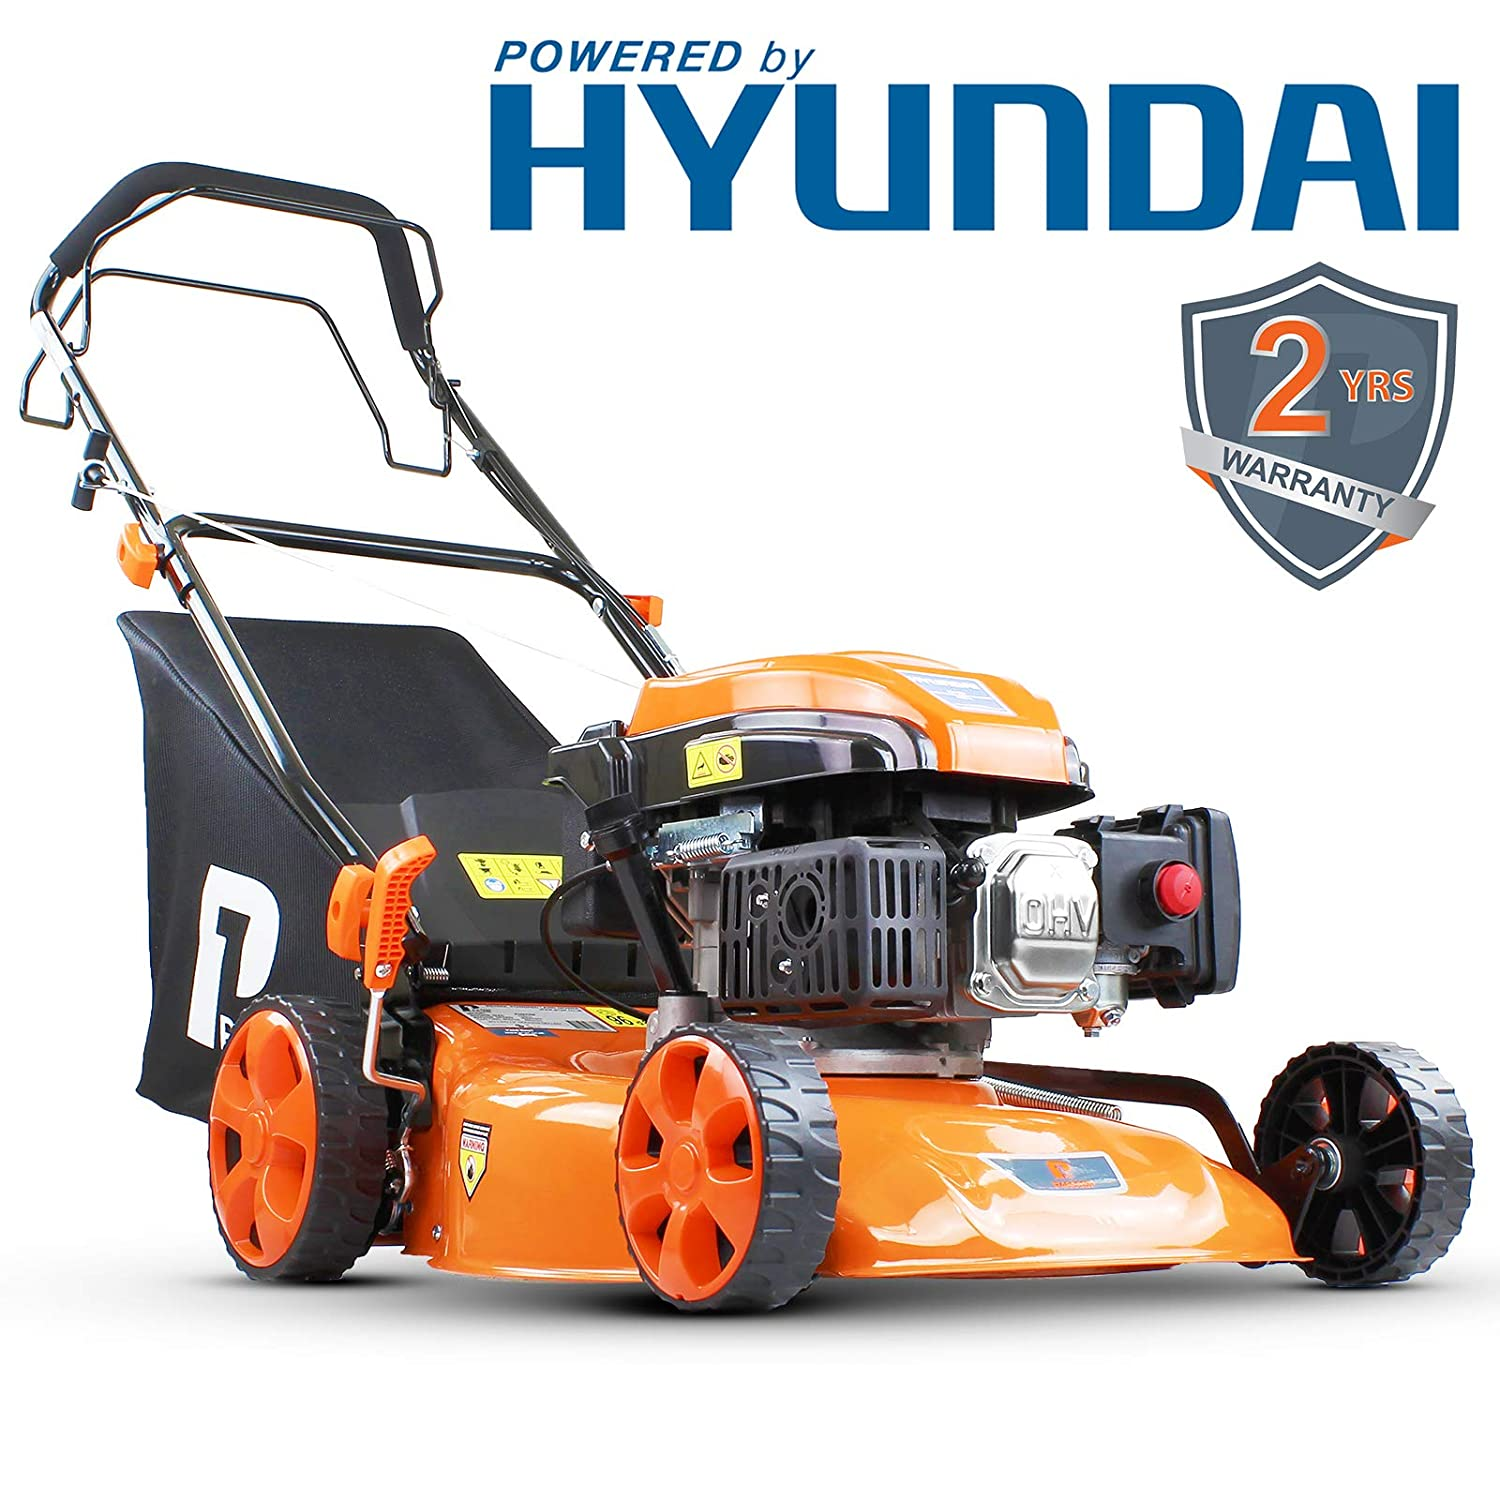 P1PE 4-Stroke Petrol Lawnmower Cutting Width 46cm / 18 inch 139CC Hyundai Powered Self Propelled P4600SP